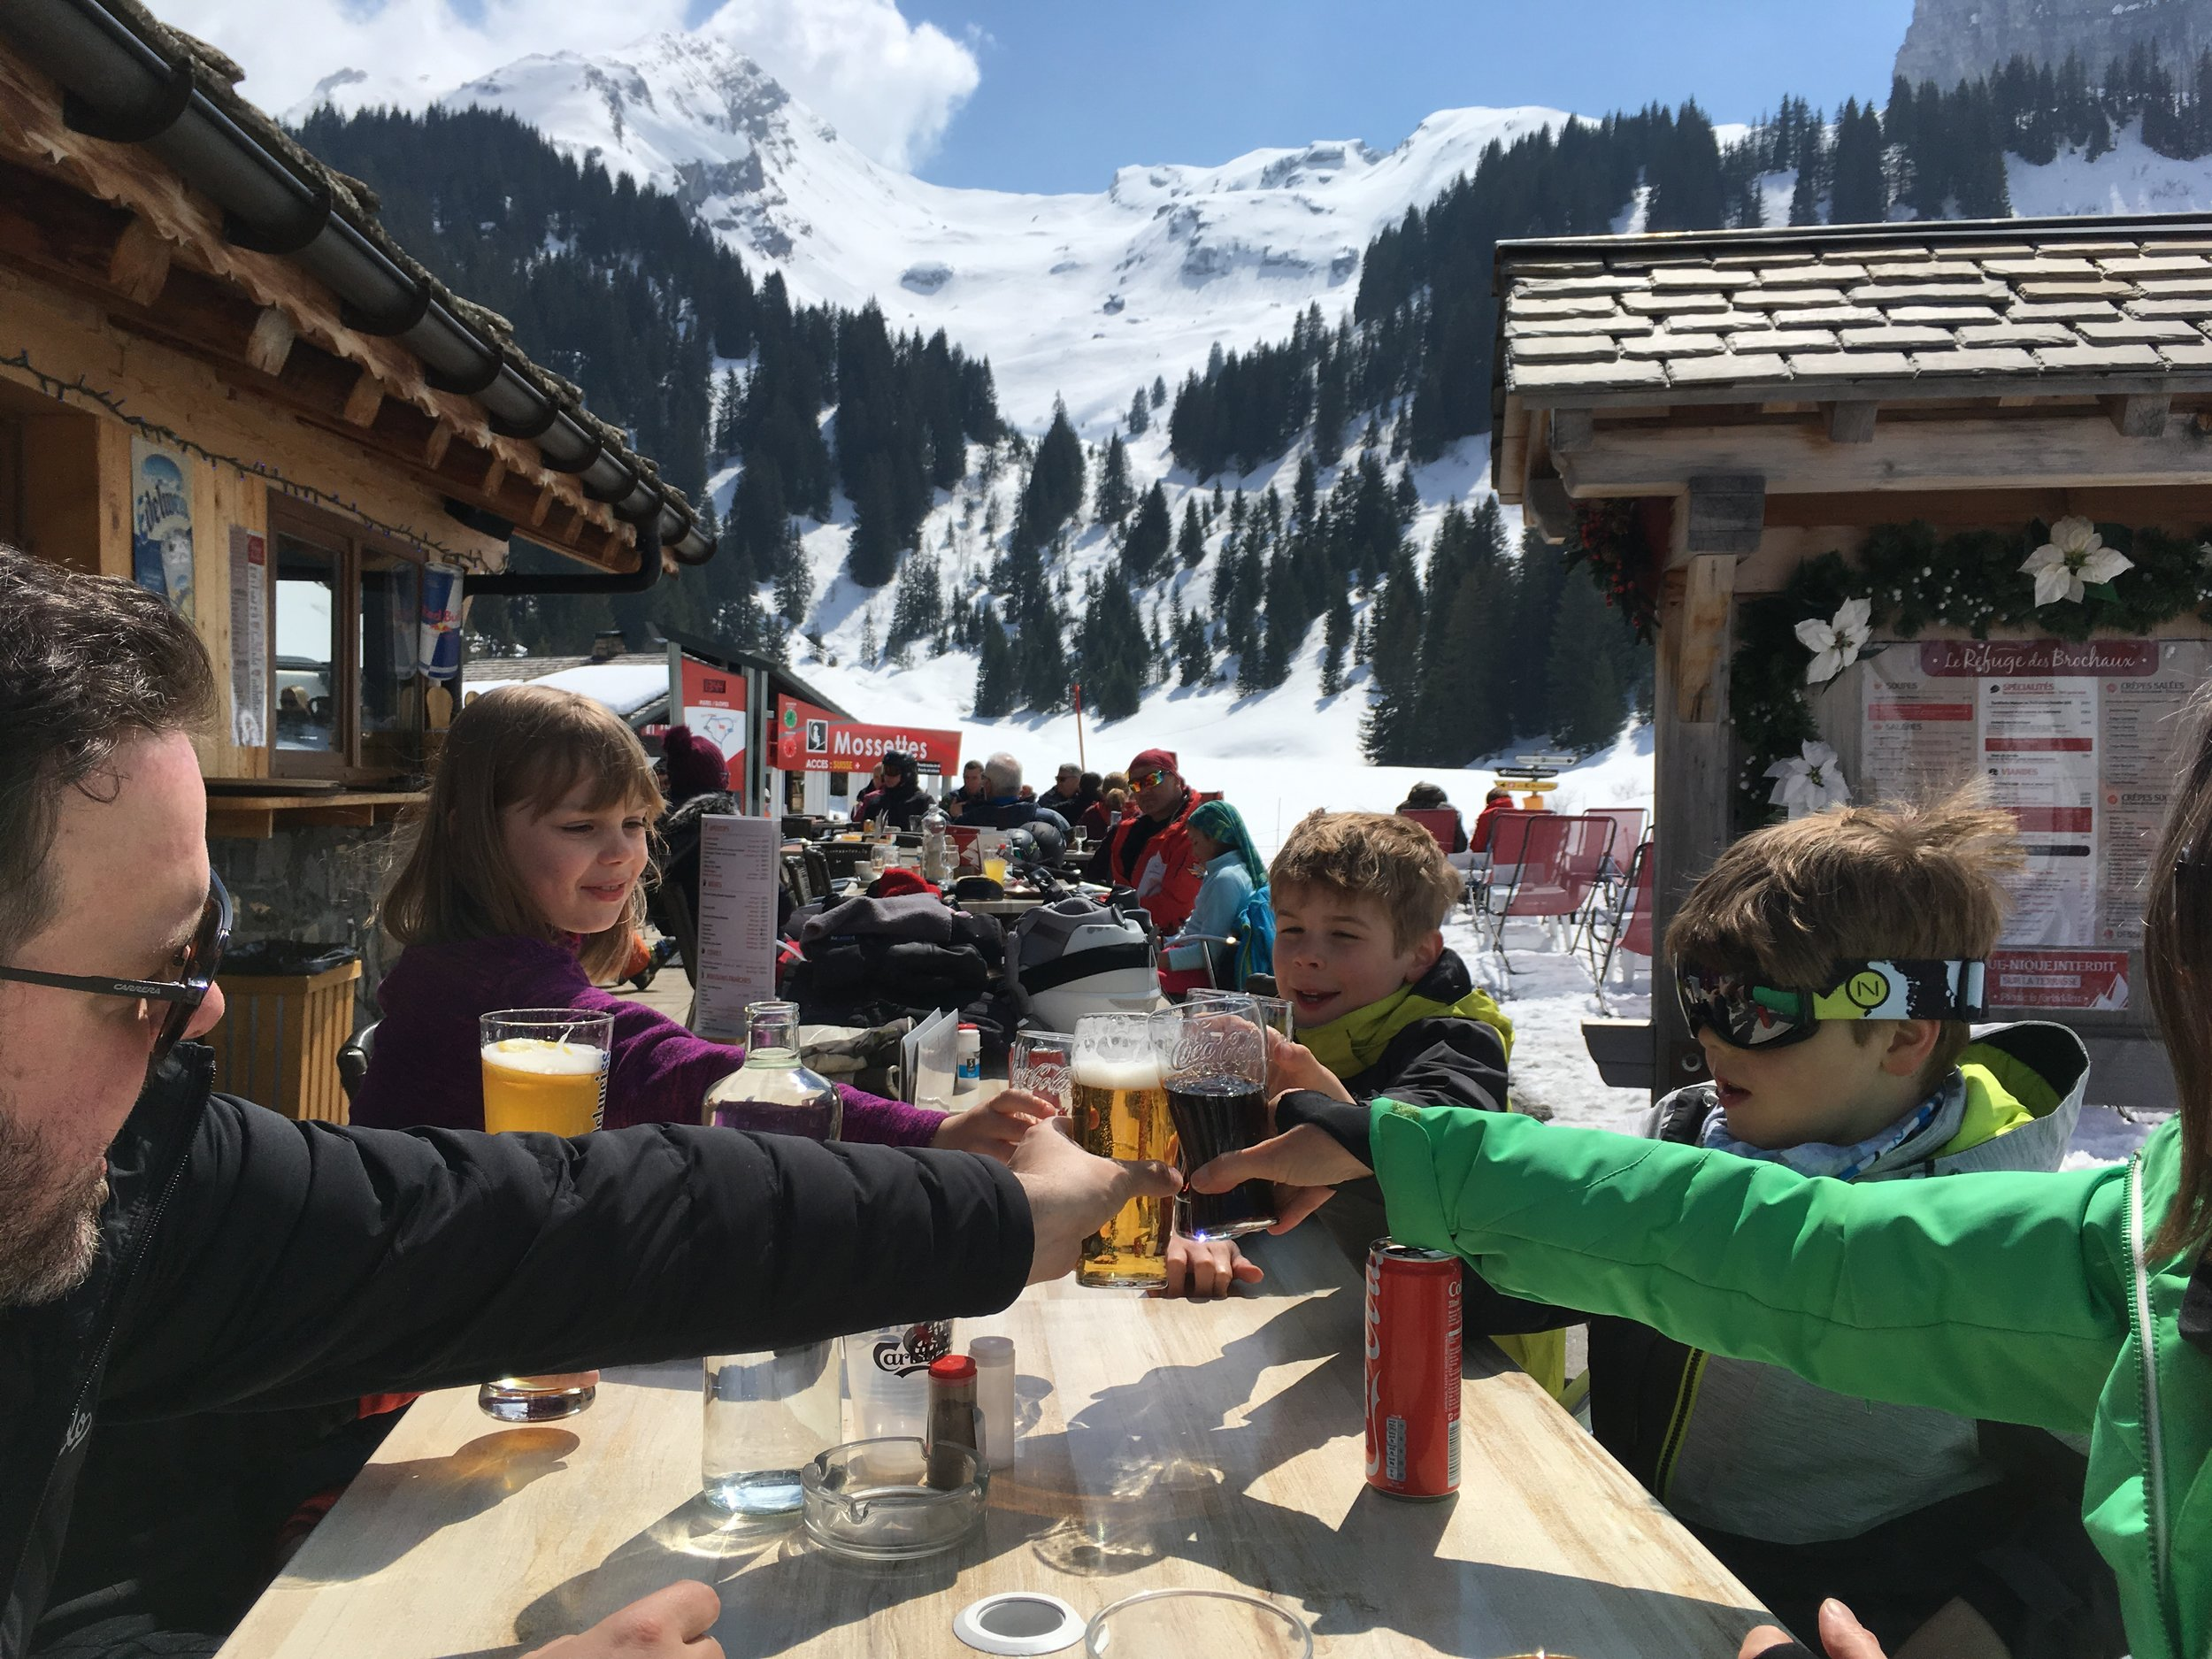 Yes…Let's! Cooked lunch on a patio in the sun before we get on the lift to get back to our country. This side of the chair lift…euros because we are in France. The other side of the lift…Swiss francs because you guessed it.